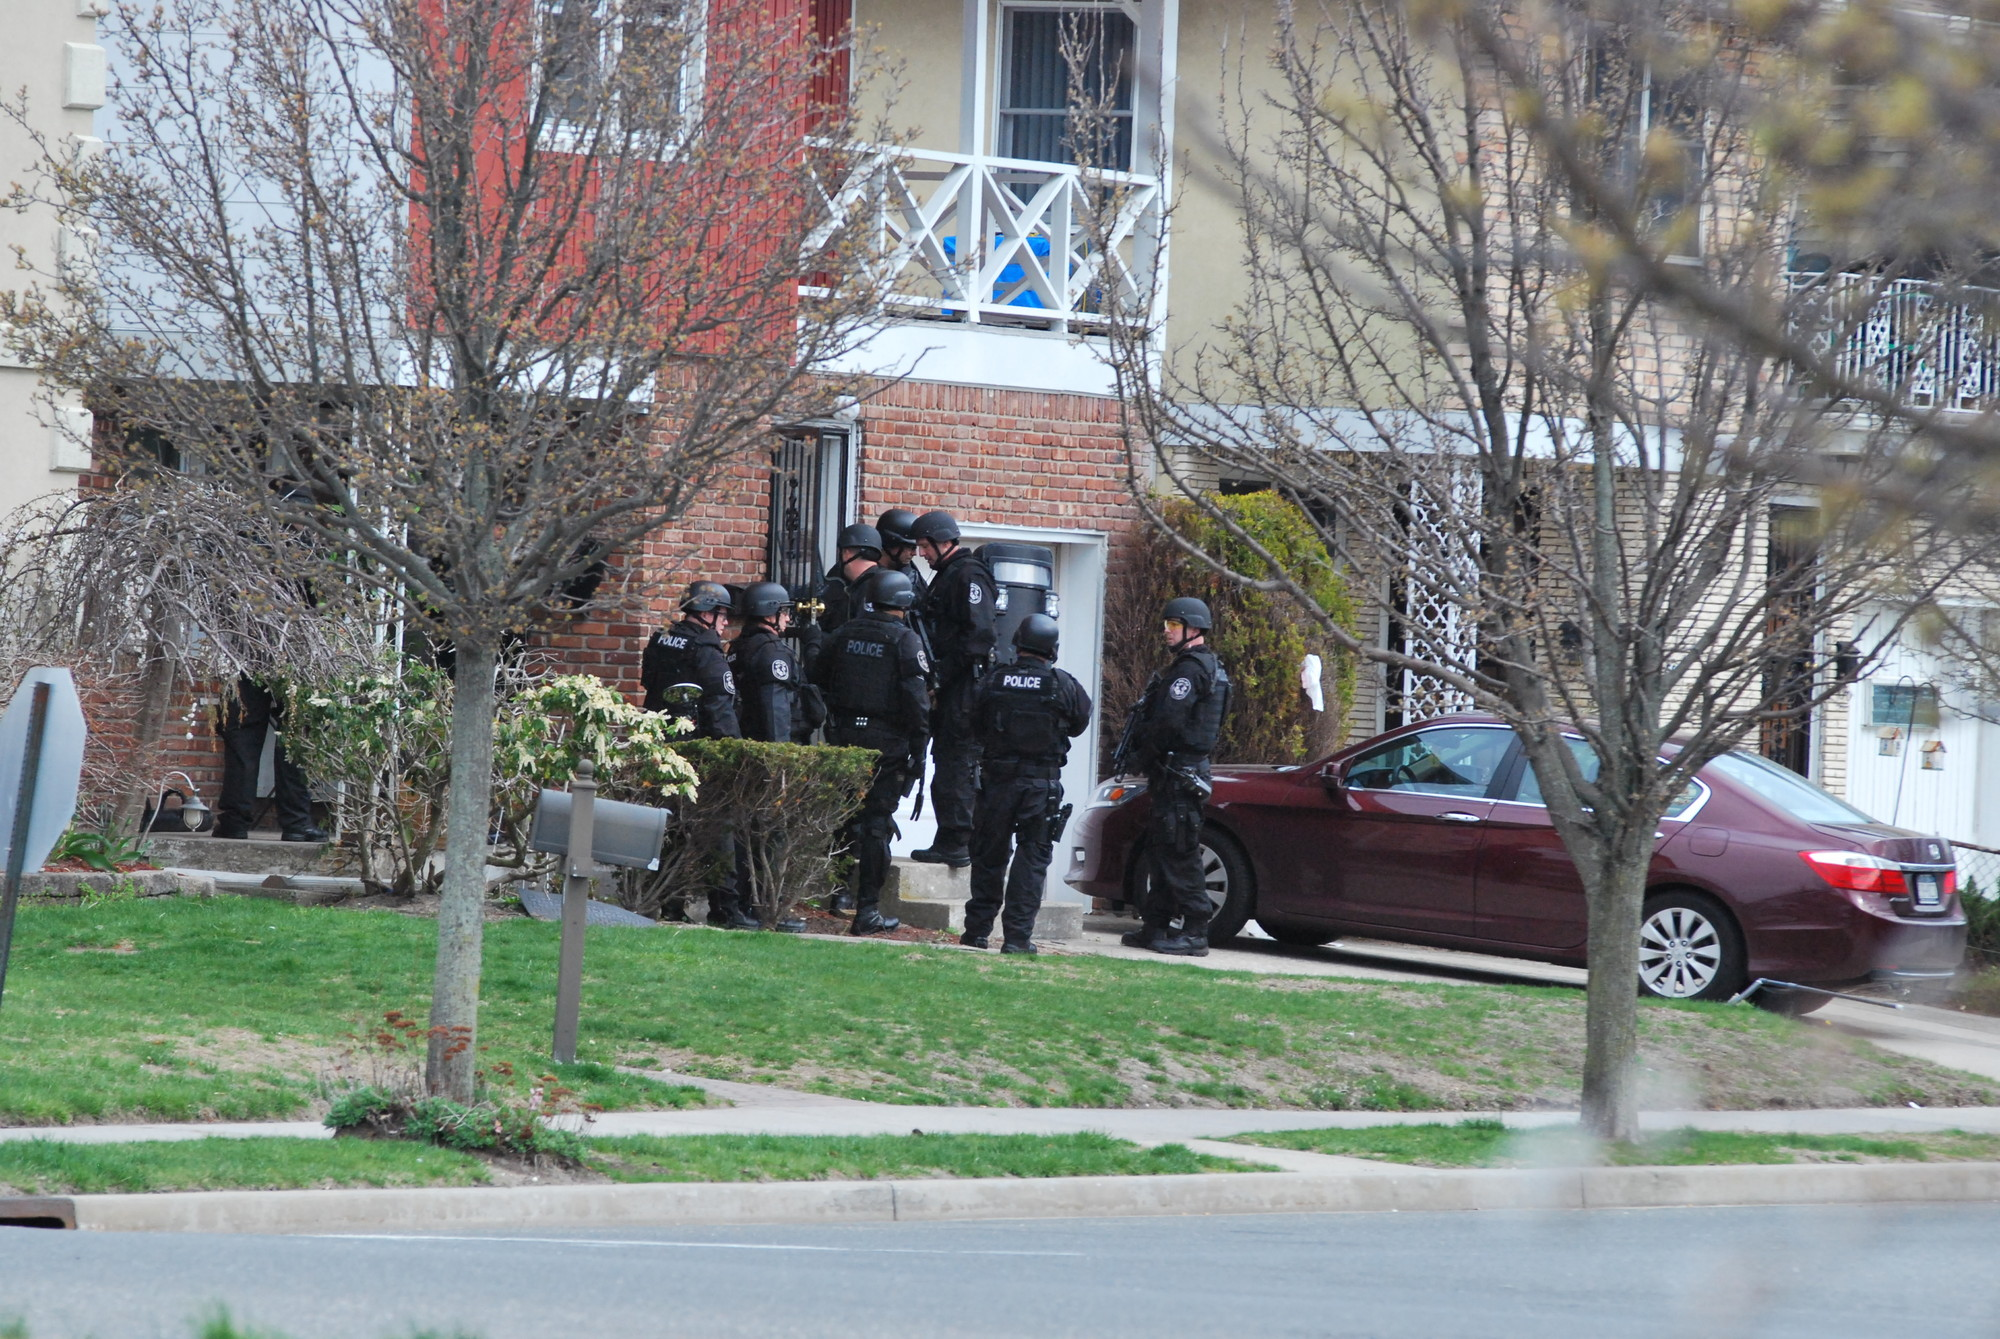 SWAT entered the Laurelton home on Tuesday, in what was determined to be a hoax.